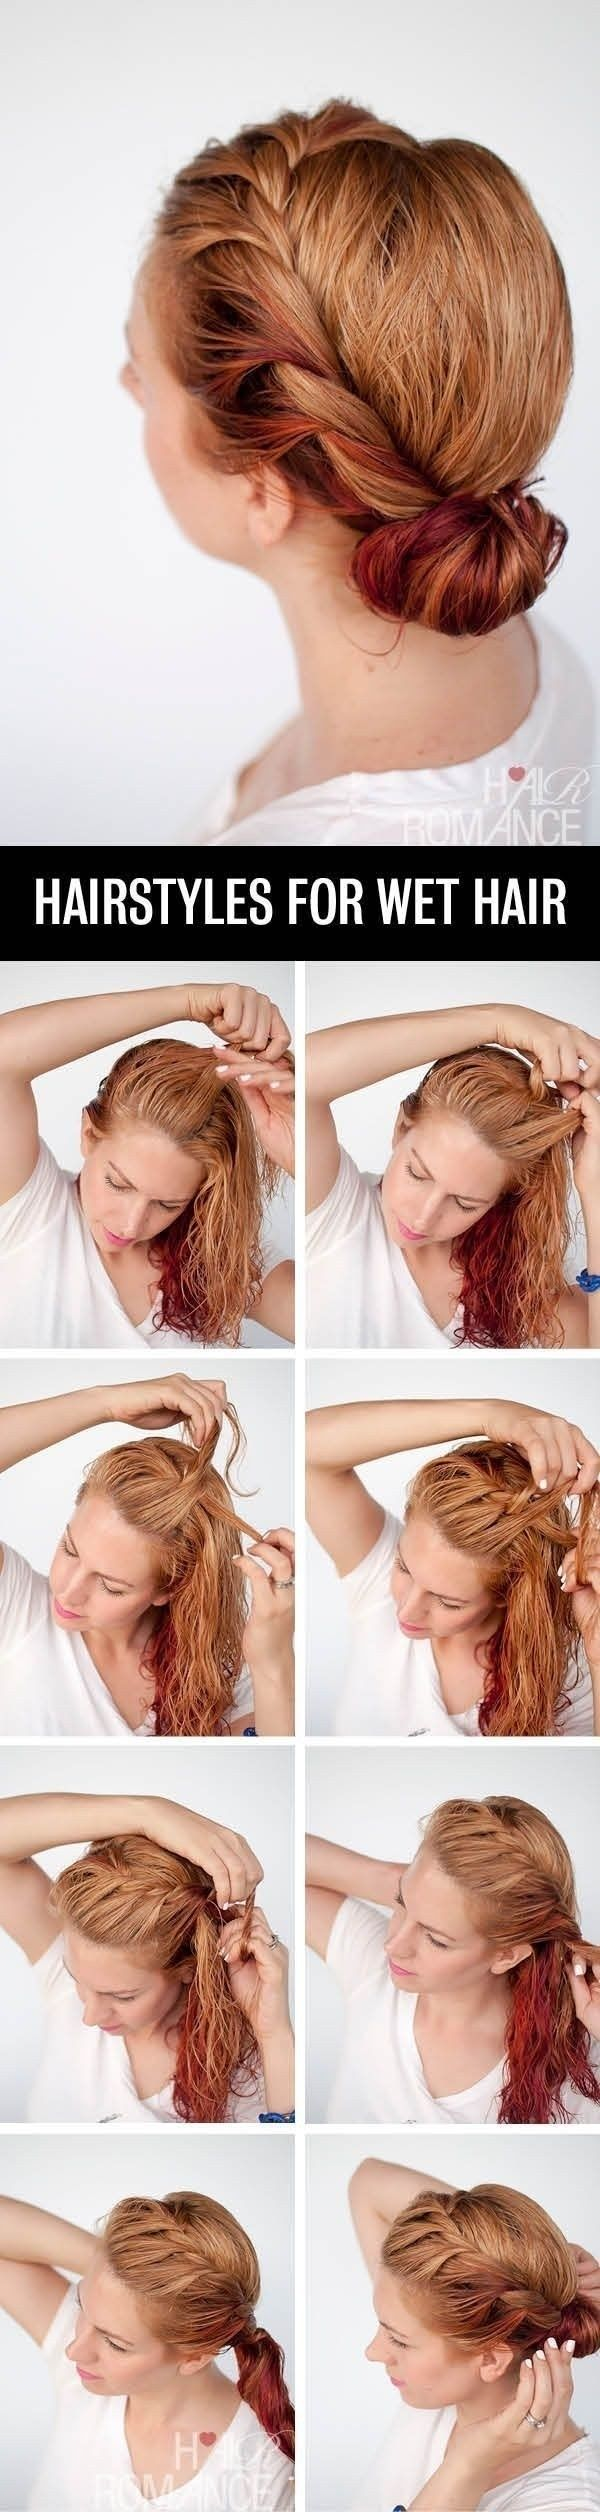 Running so late that your hair is still wet from the shower? Just crown braid or rope twist wet hair and roll it into a bun. | 17 Five-Minute Hairstyles For When You're Running Crazy Late